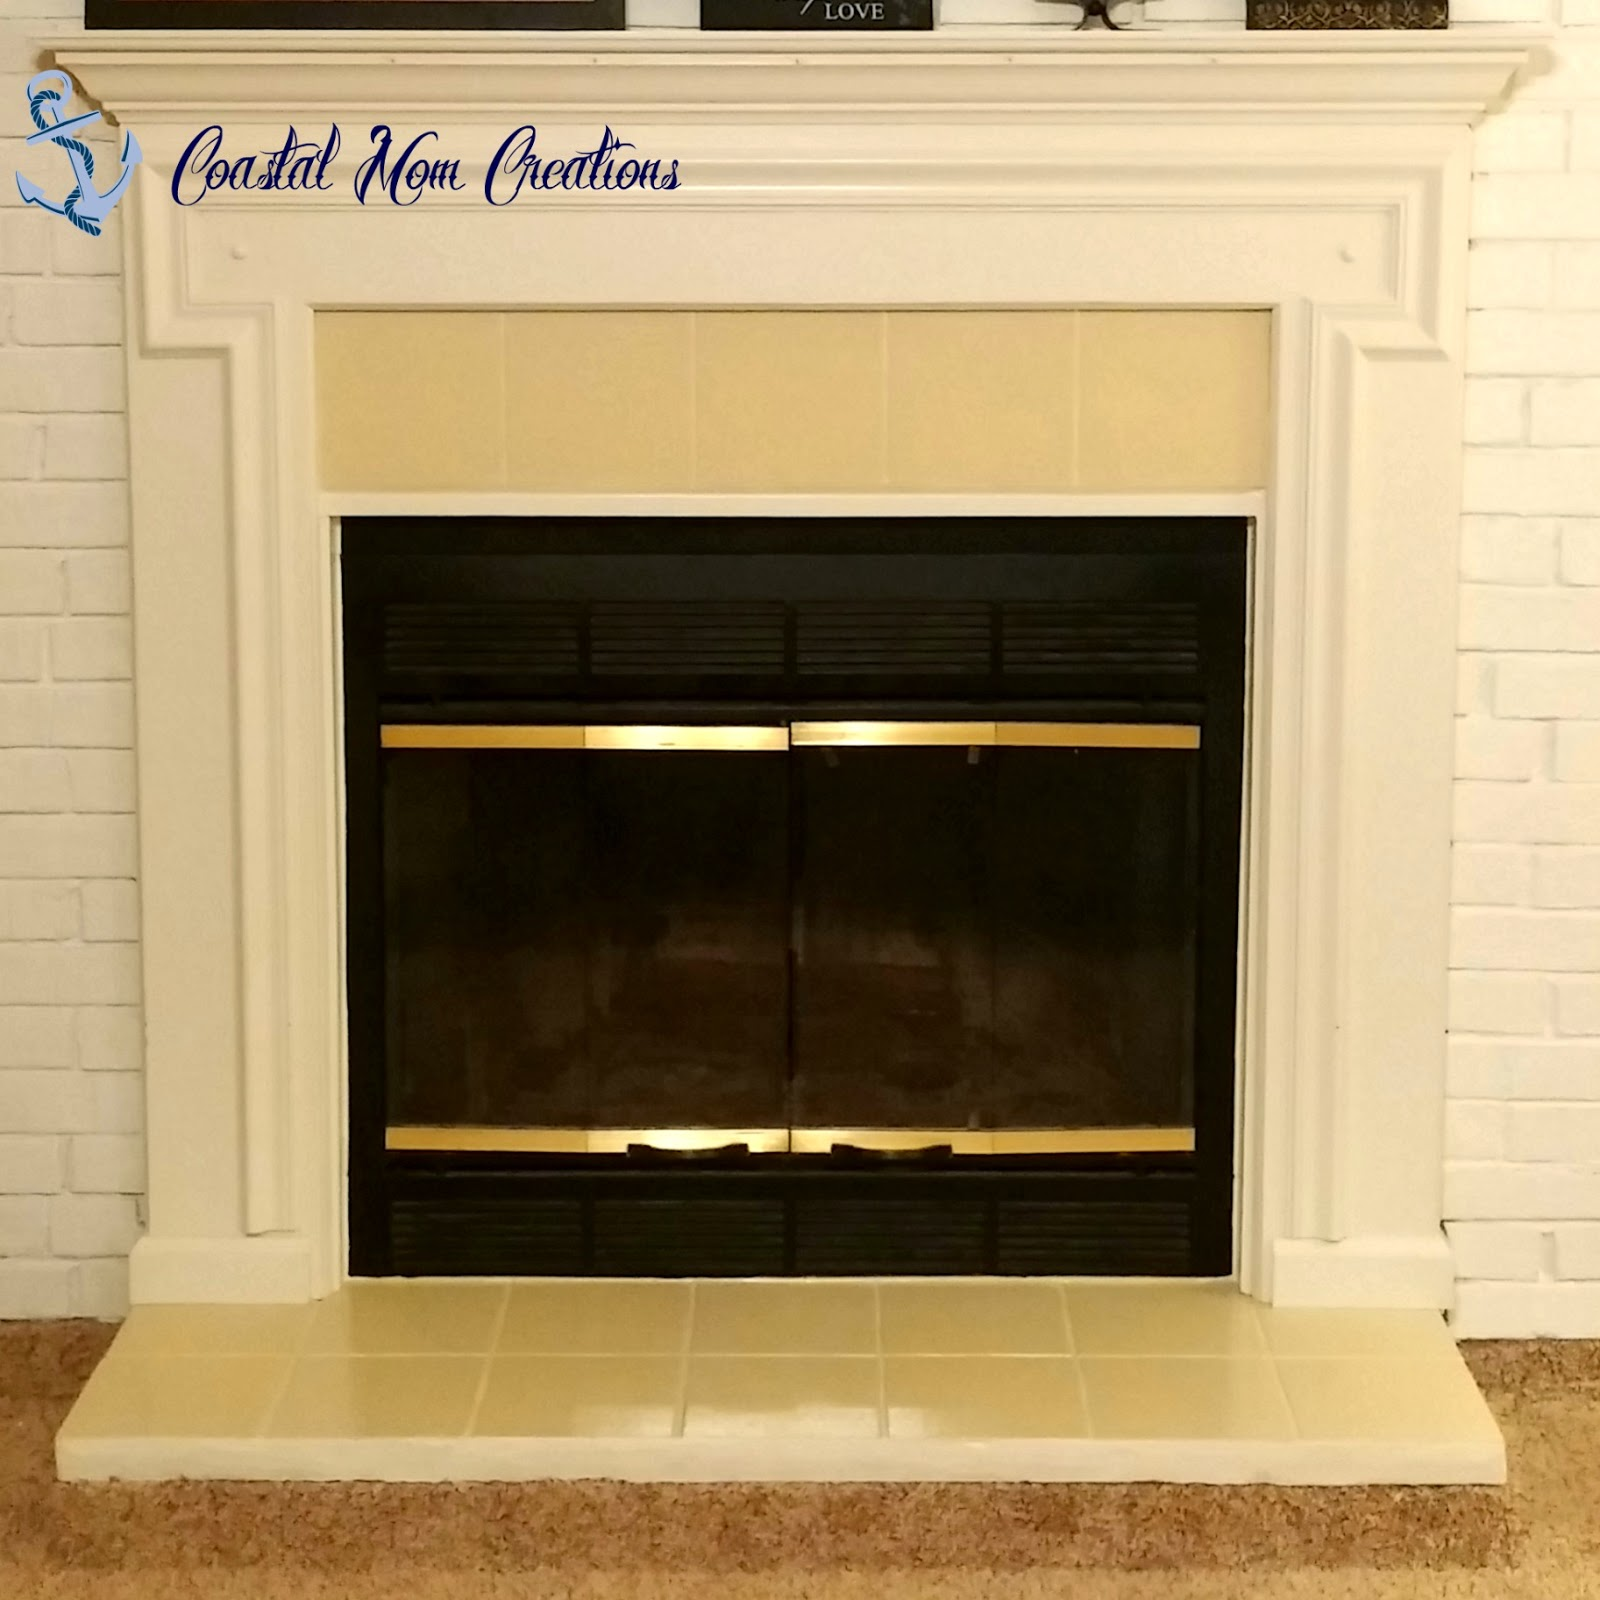 coastal mom creations how to update fireplace tile